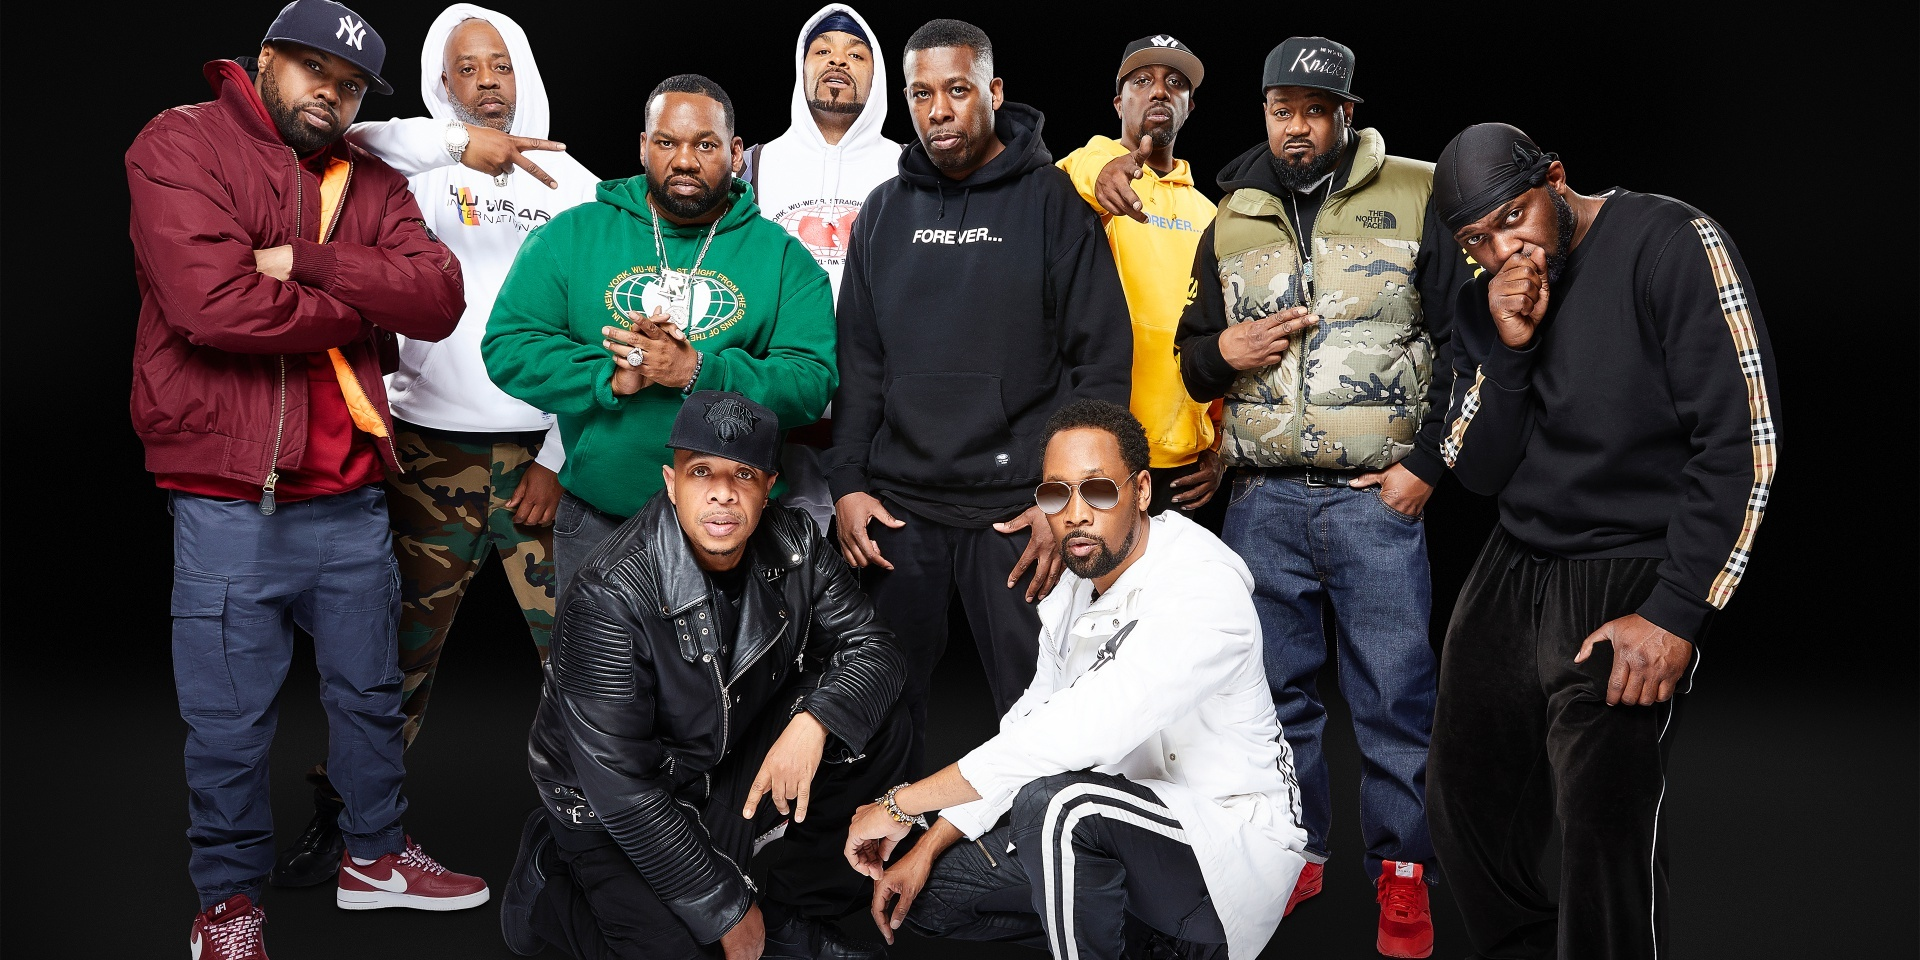 Wu-Tang Clan announces new EP inspired from documentary, Of Mics And Men